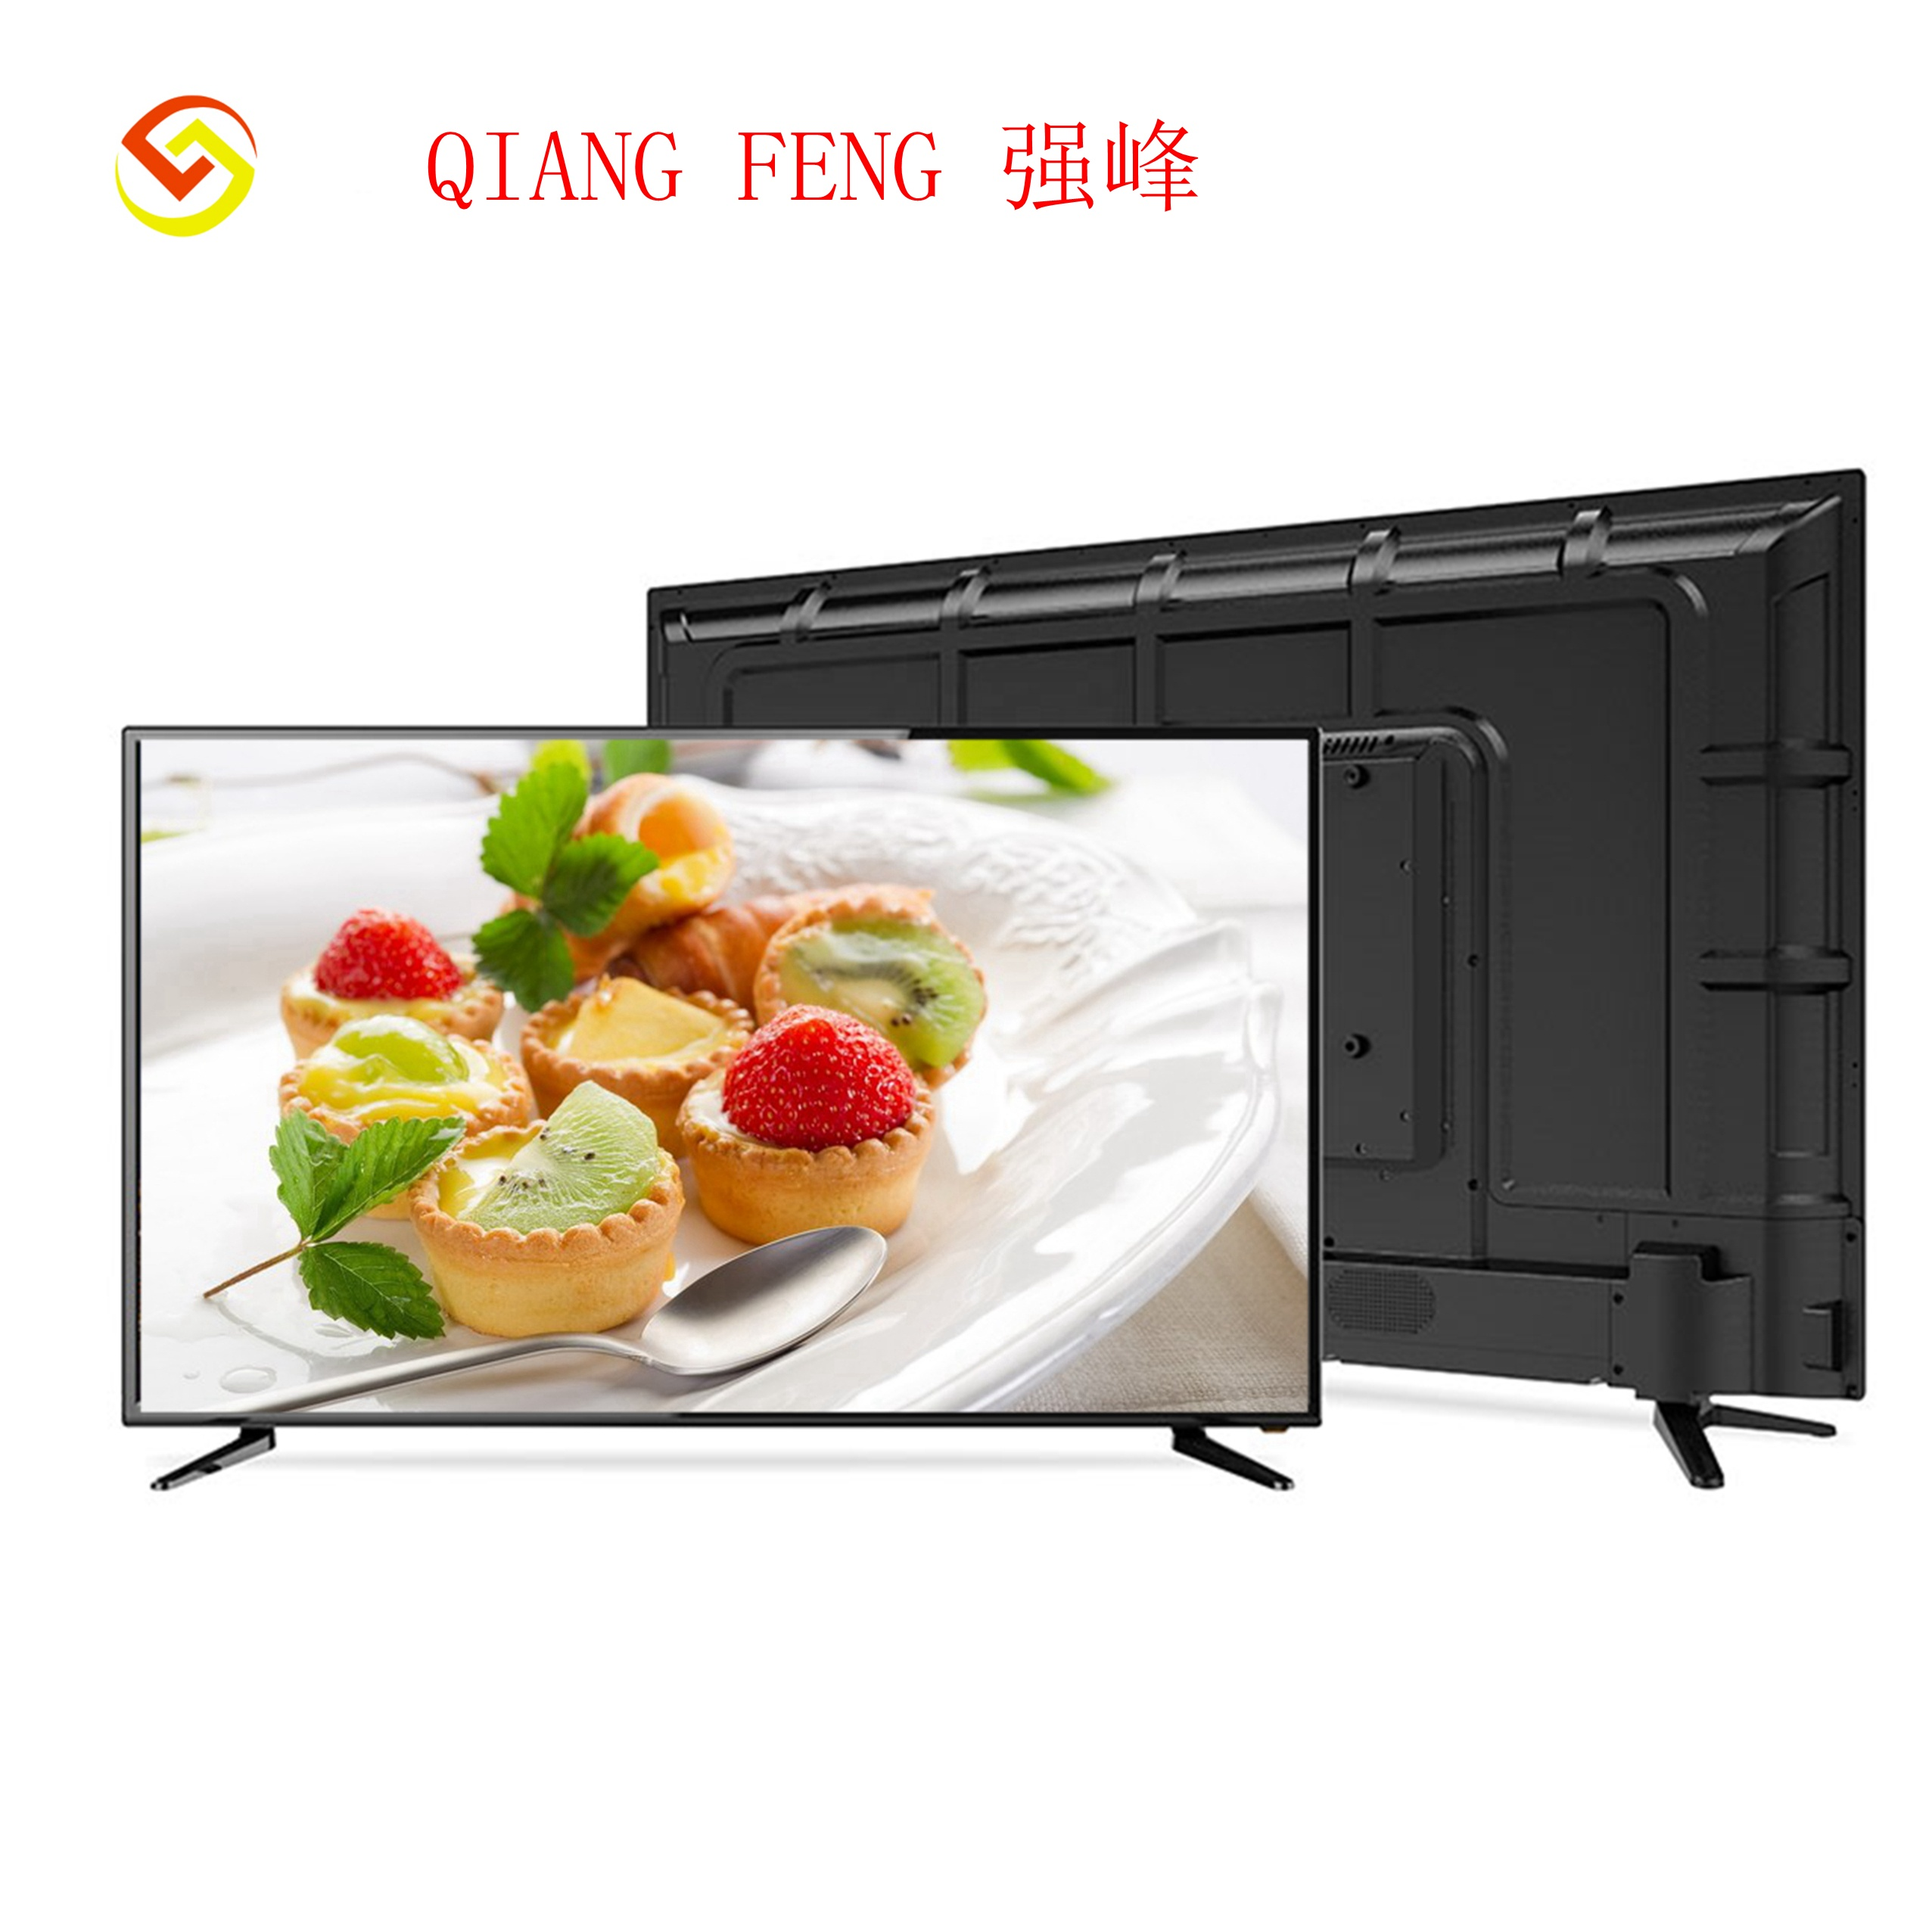 Qiangfeng 22 Inch Cheap Chinese <strong>TV</strong> LED DLED Without Front Glass Model <strong>TV</strong> television smart android SKD <strong>TV</strong>